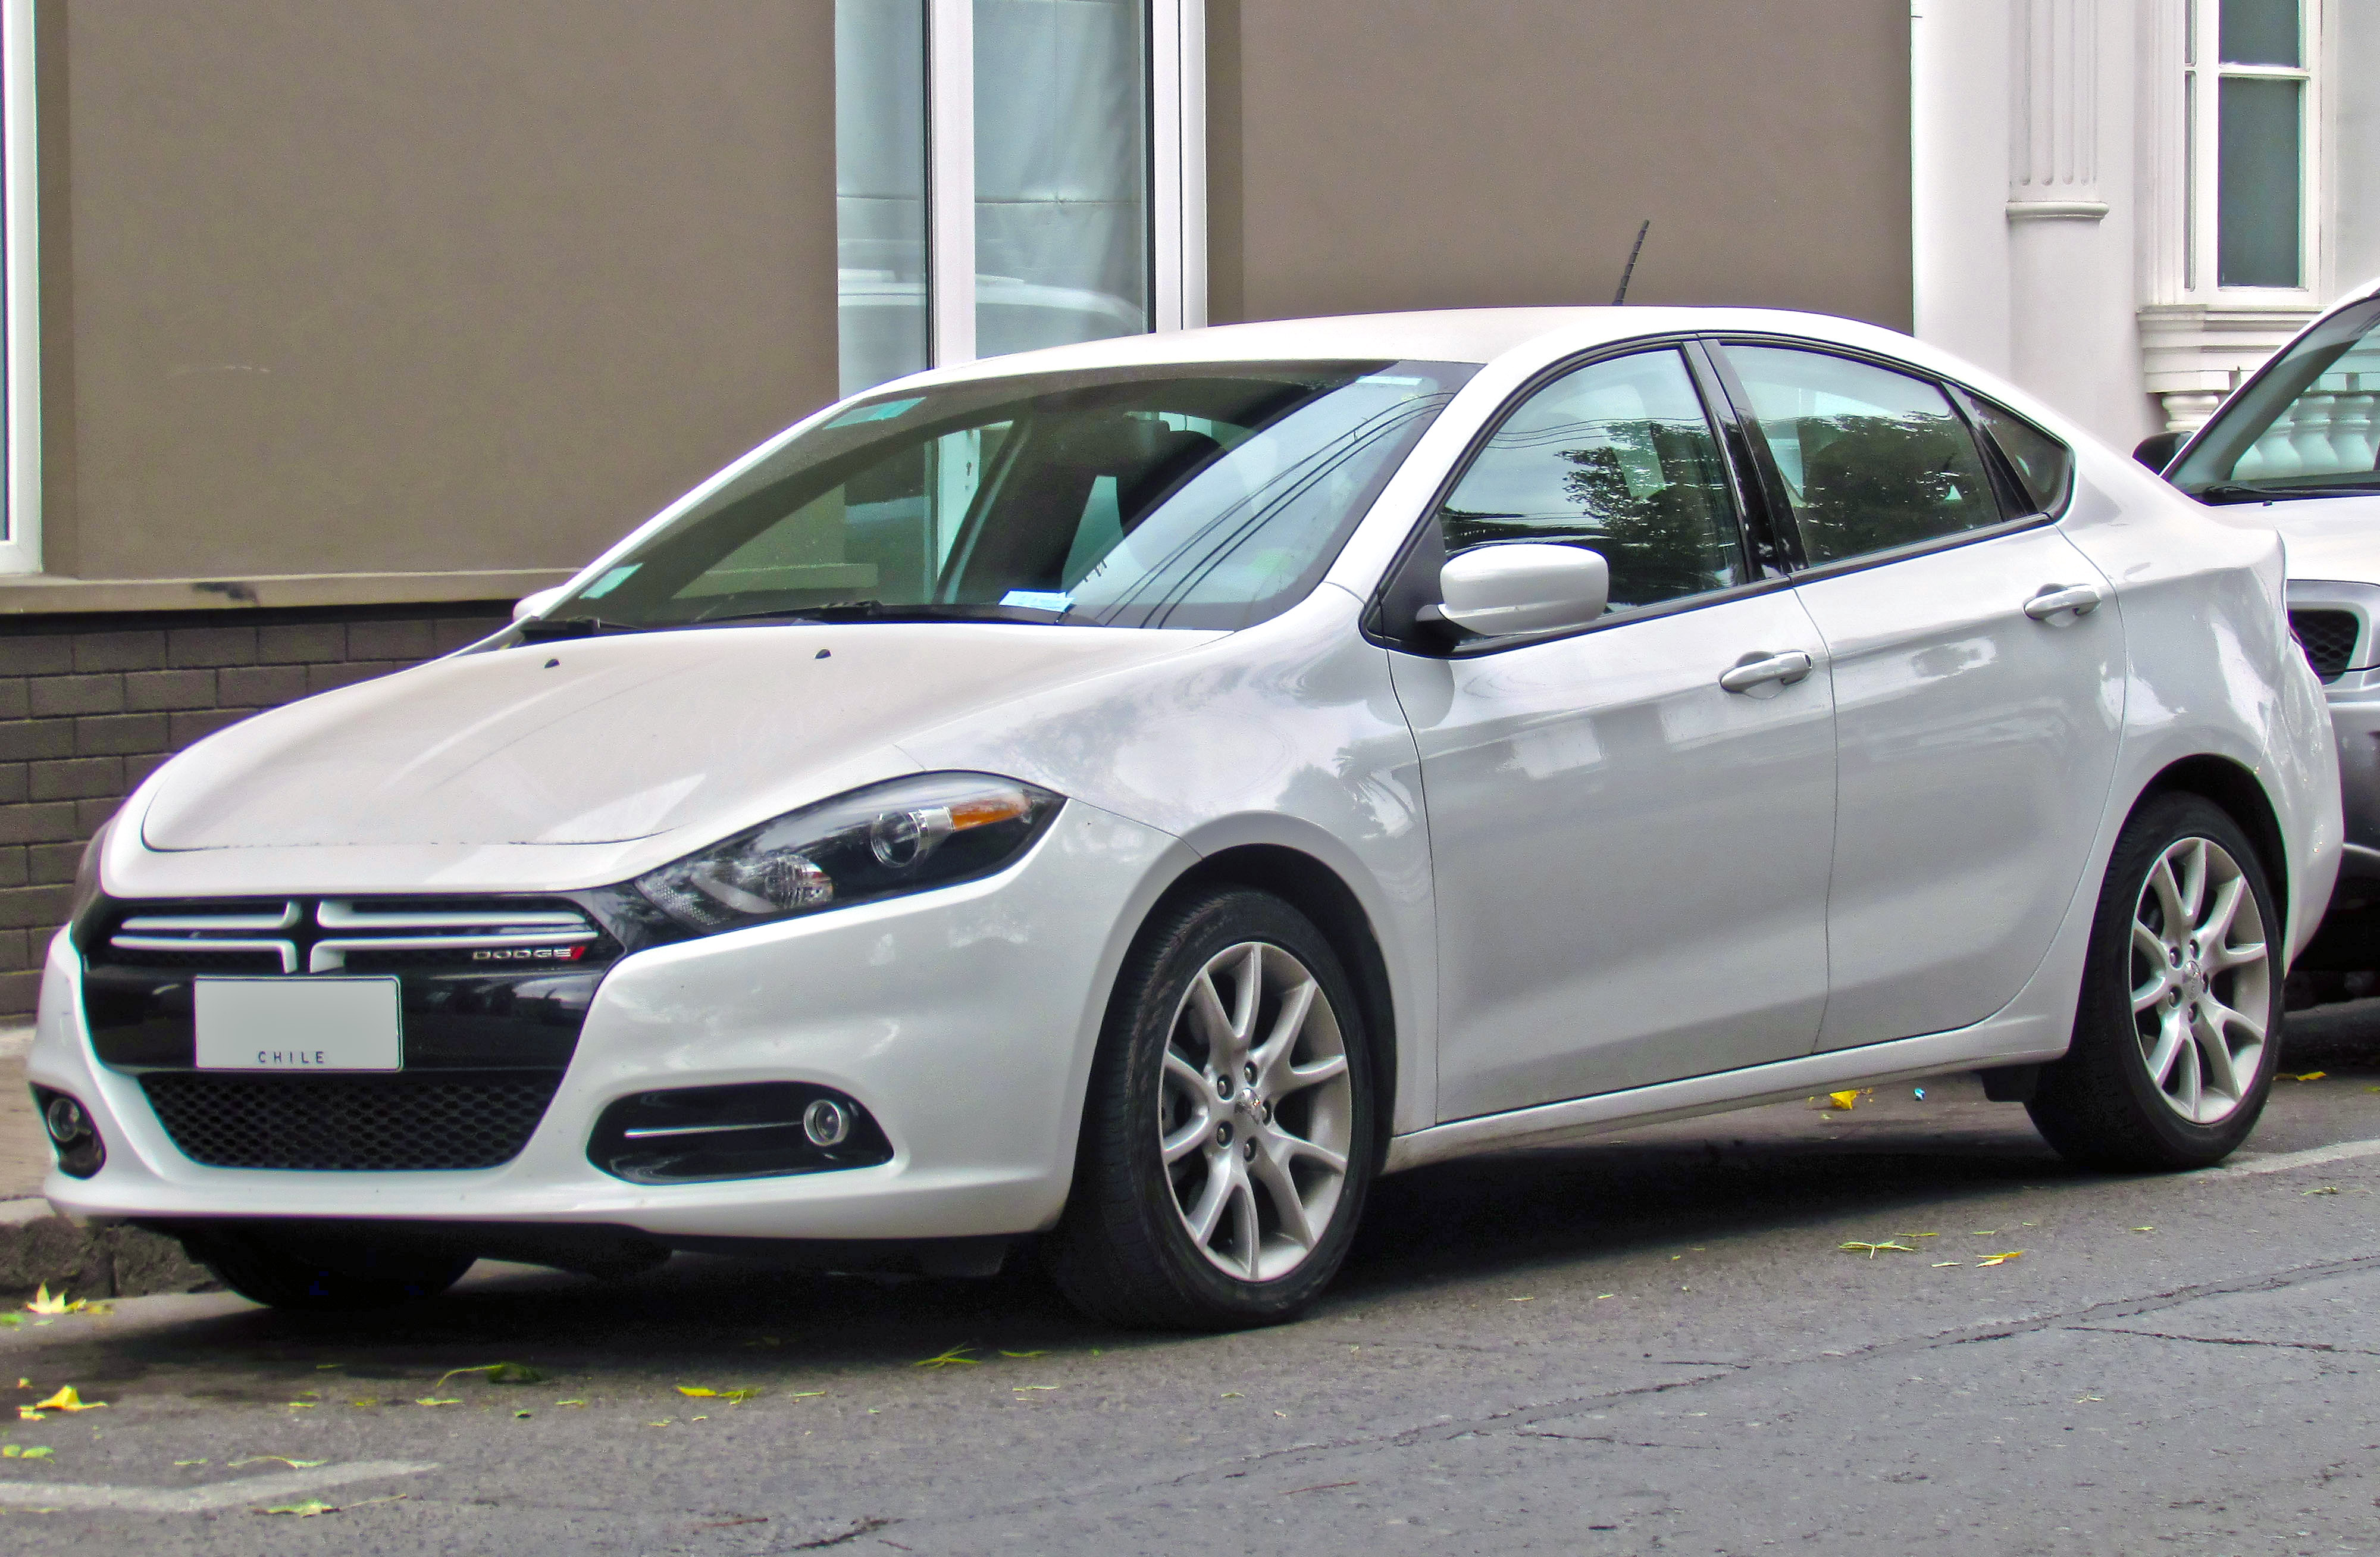 Find all the information about the 2014 dodge dart in canada! Dodge Dart Pf Wikipedia